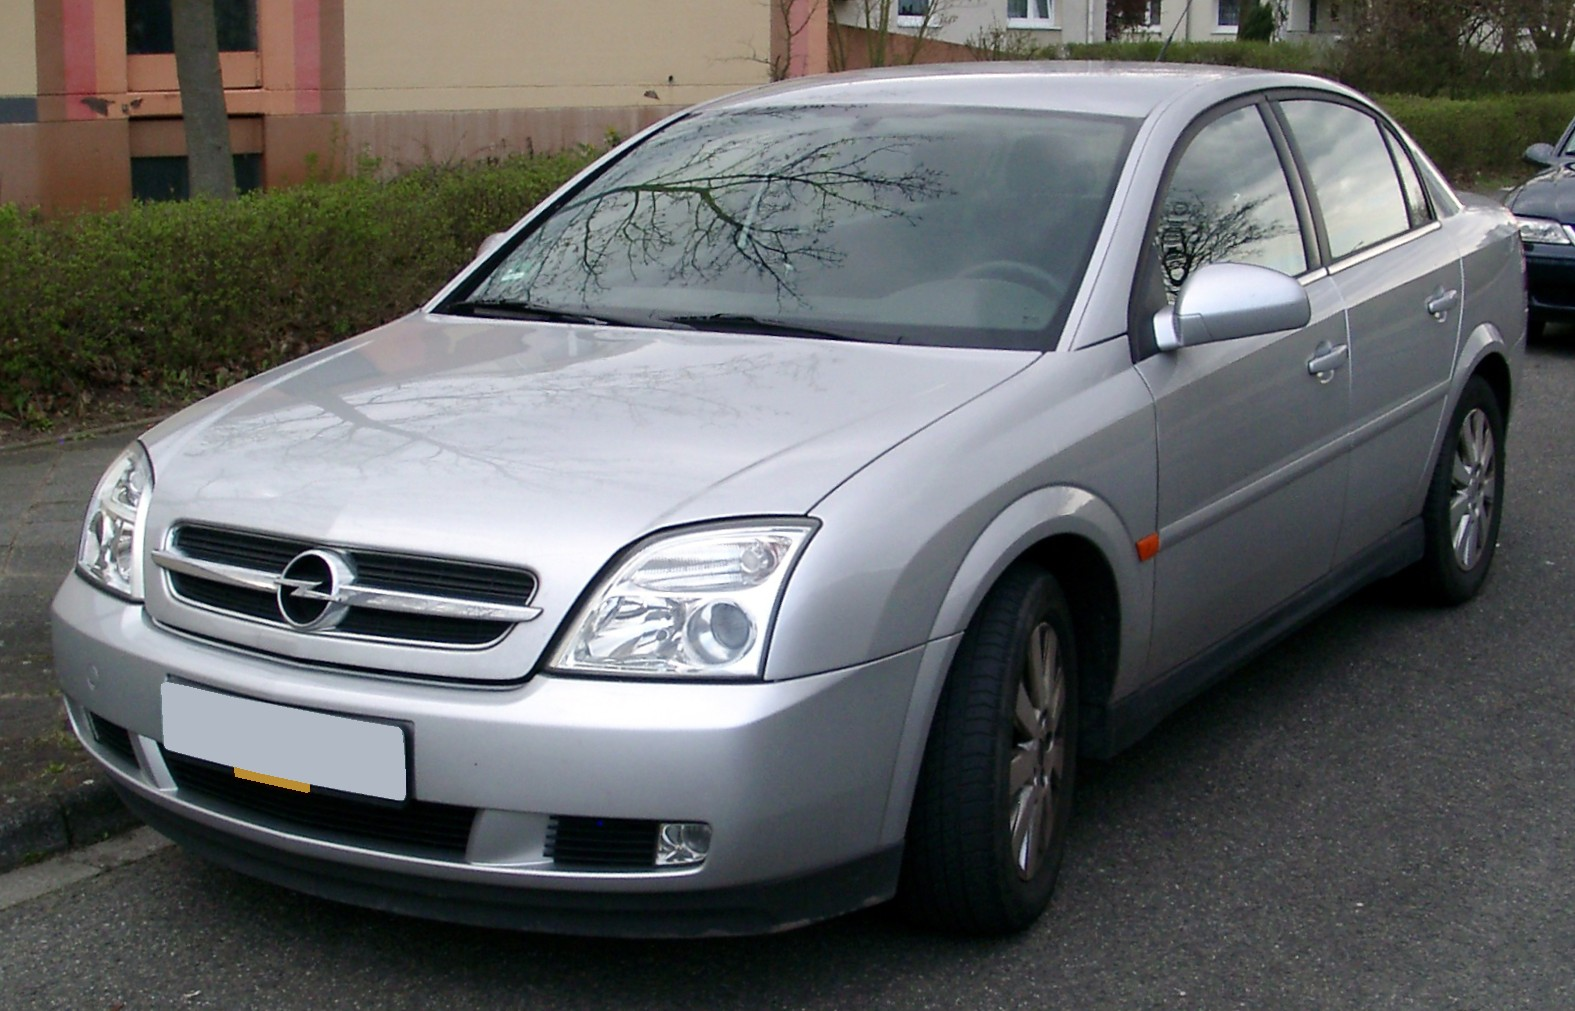 holden vectra hatcback (b) 2011 models